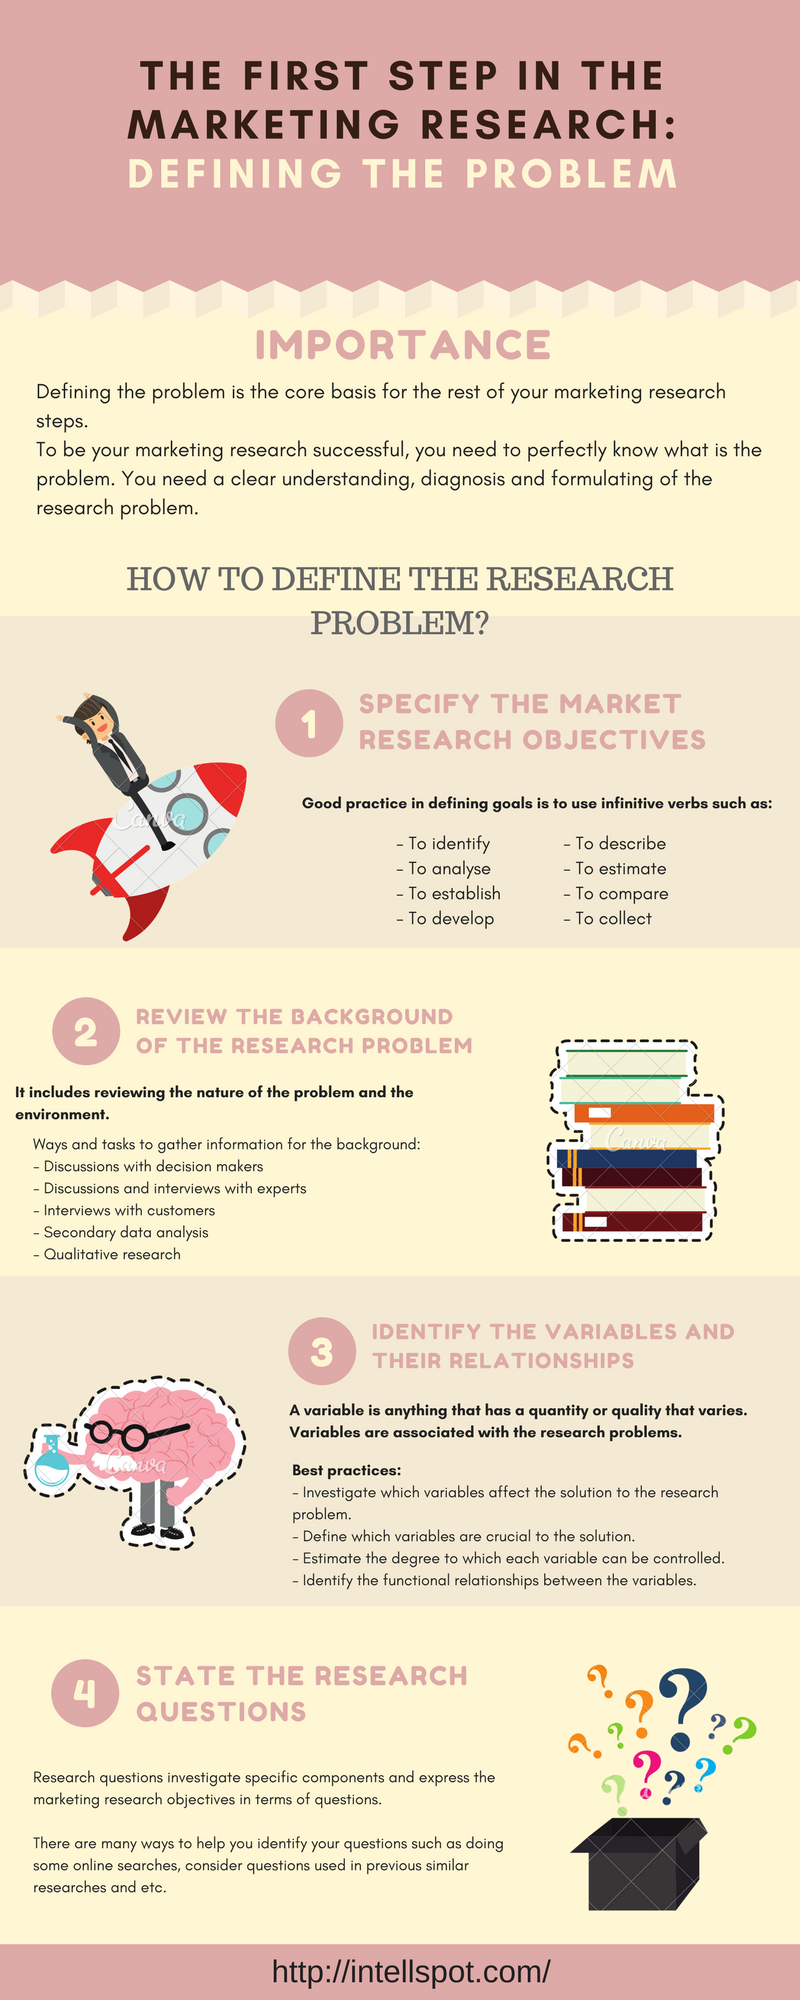 Defining the Market Research Problem Infographic